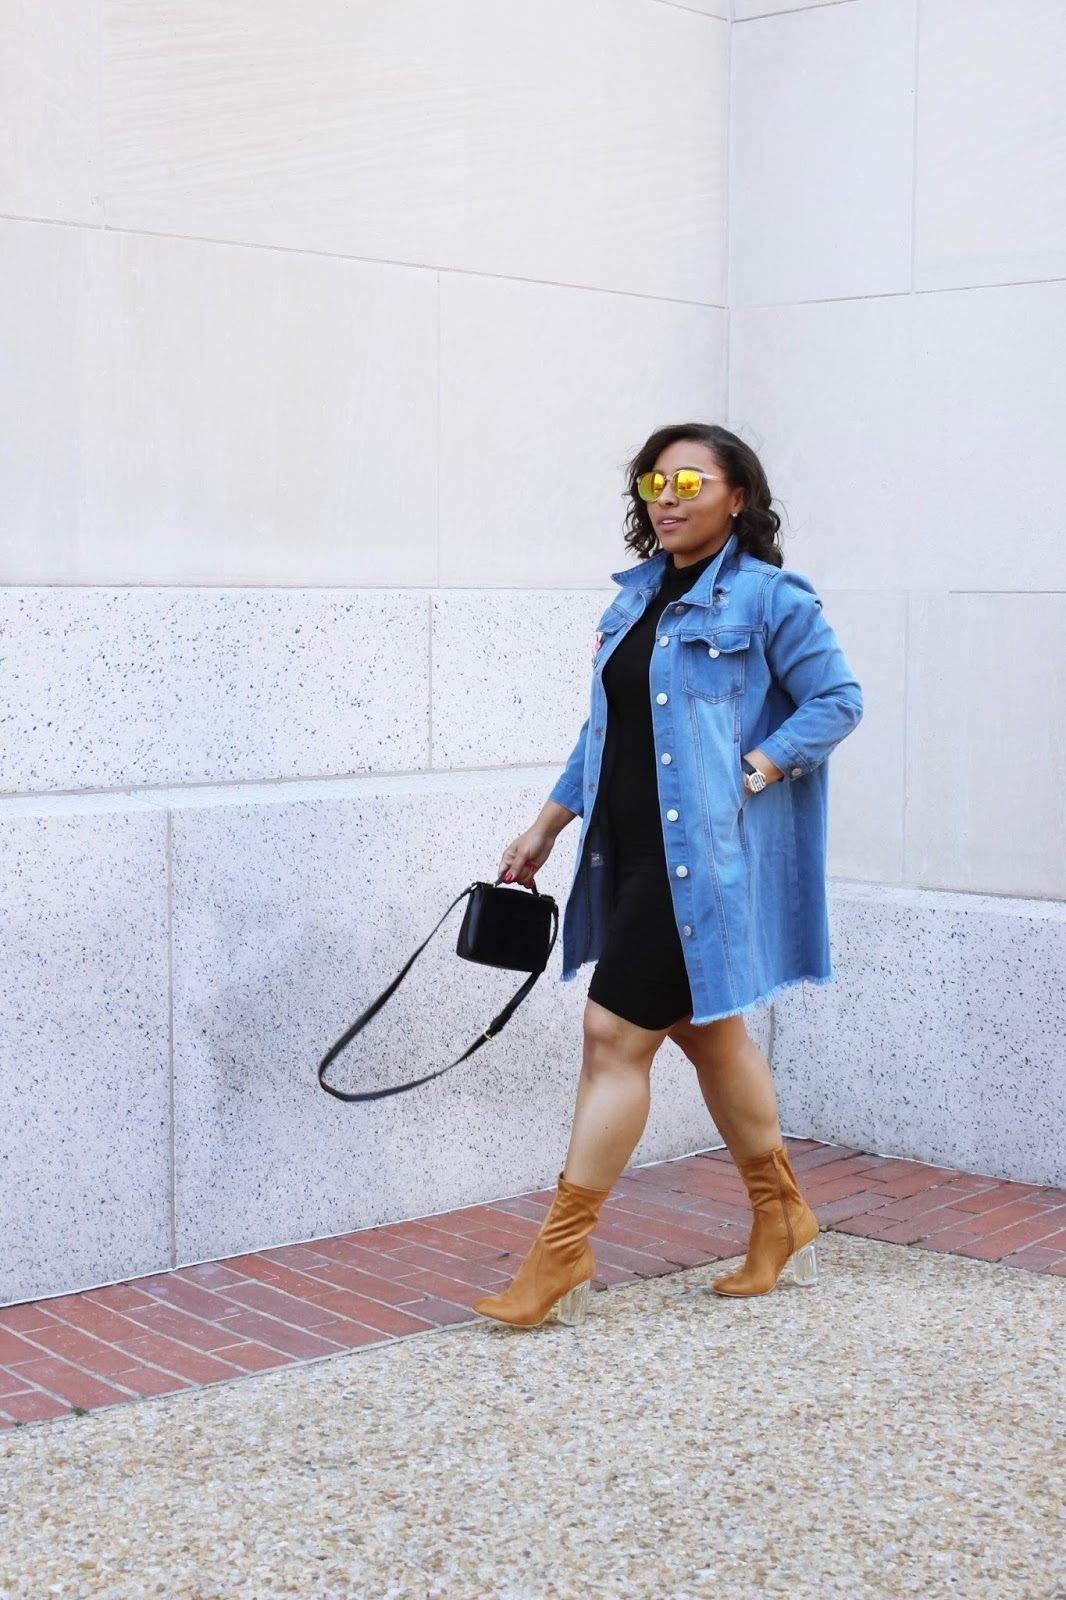 An Oversized Denim Jacket, denim jacket, oversized jacket trend, jean jacket, oversized, colored sunglasses, rainbow jackets, sock booties, clear heel booties, spring outfits, spring trends, sock boots, how to style an oversized jacket